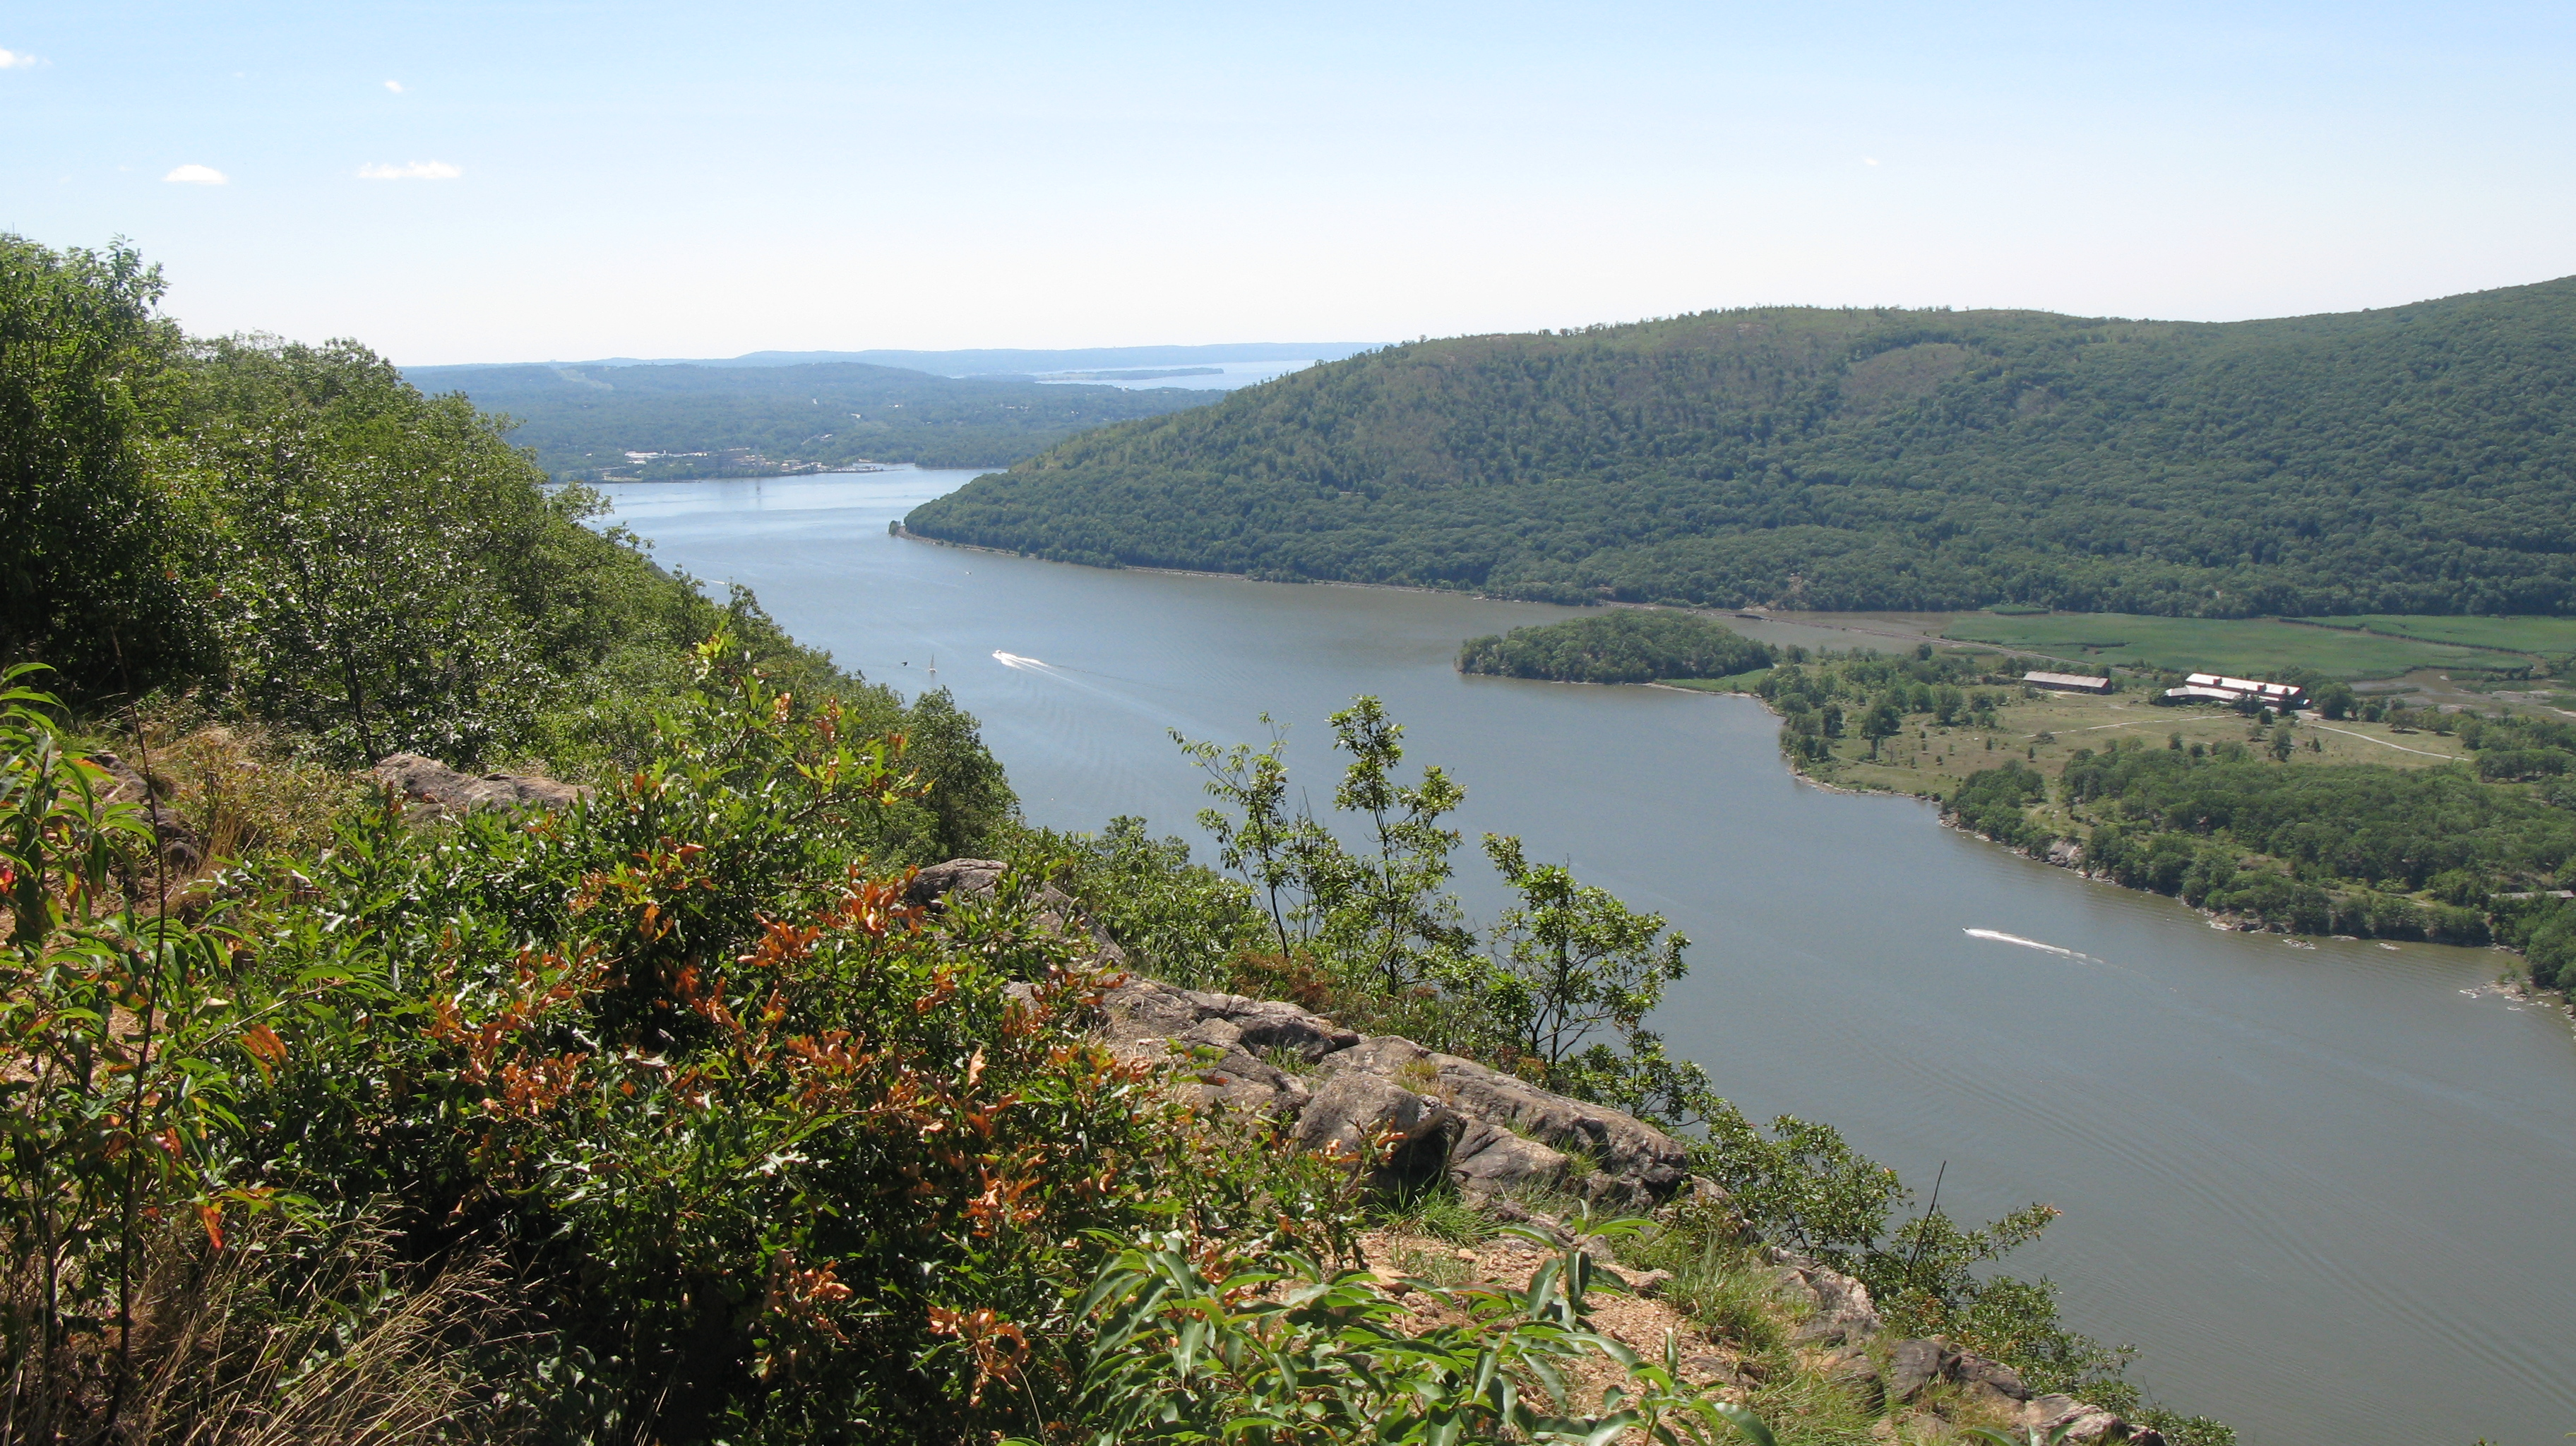 anthonys-nose-view-with-verplanck-and-croton-pt-park-in-distant-background